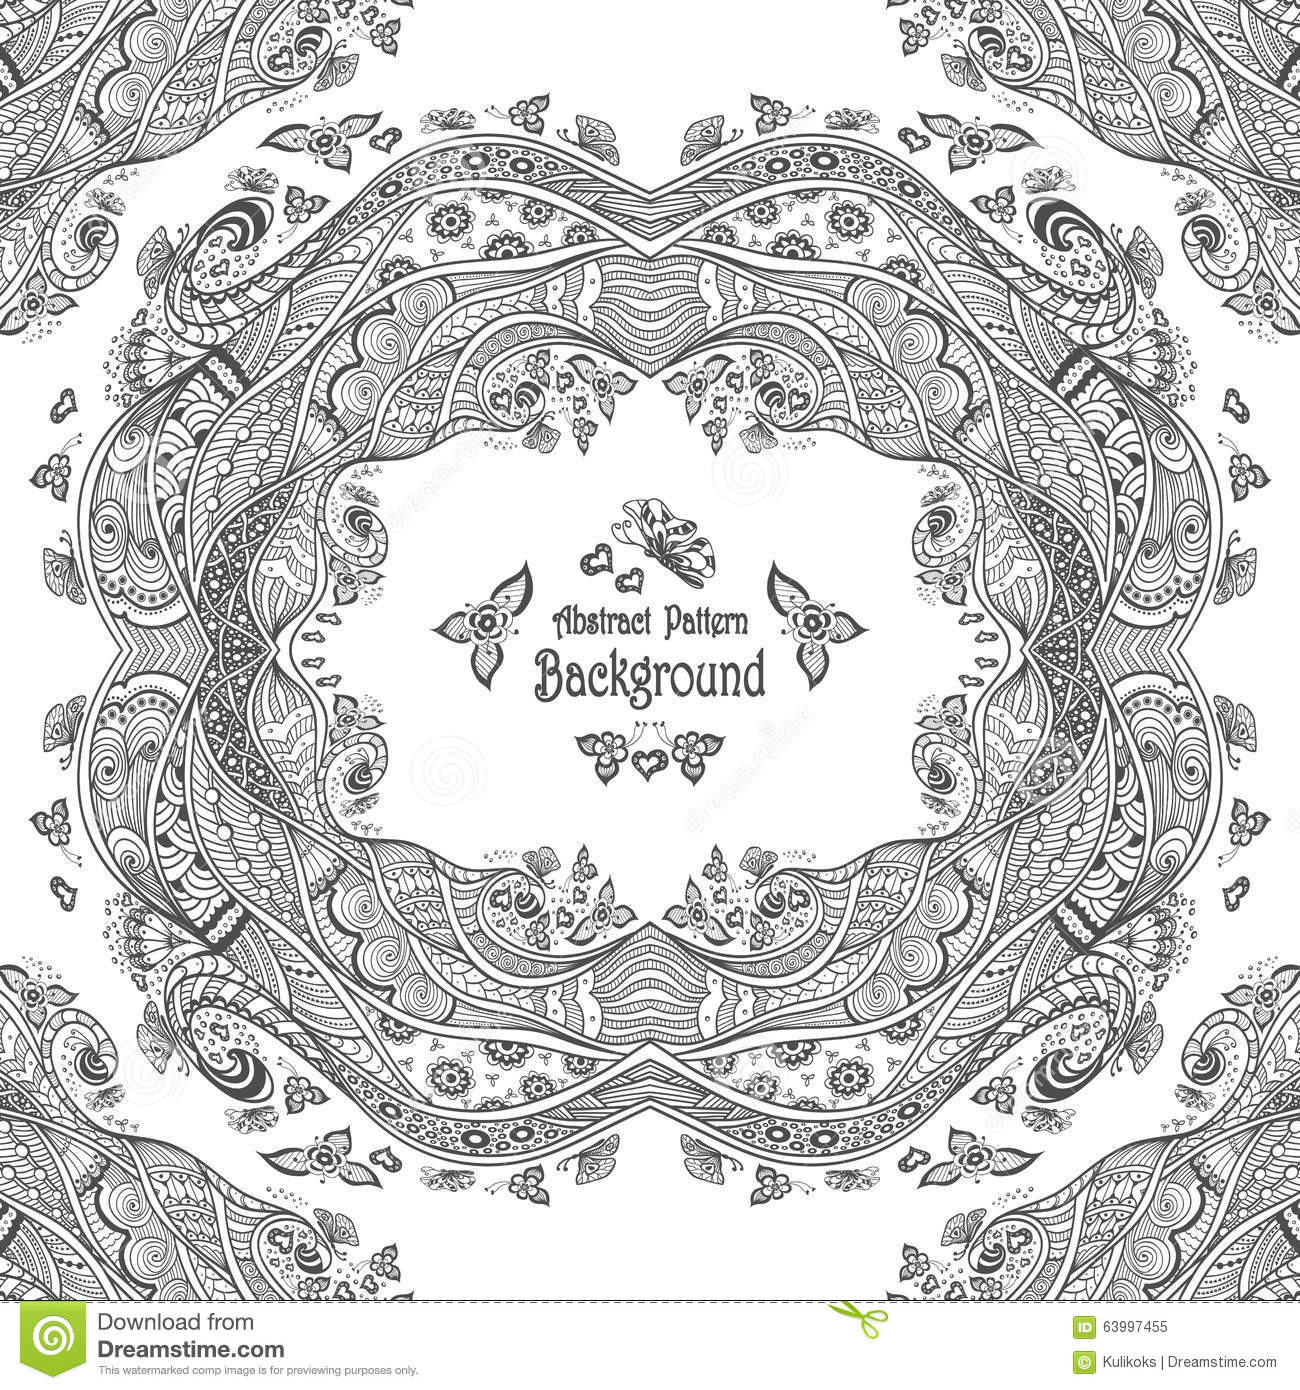 Abstract Circle Coloring Pages : Abstract circle frame with pattern background in zen